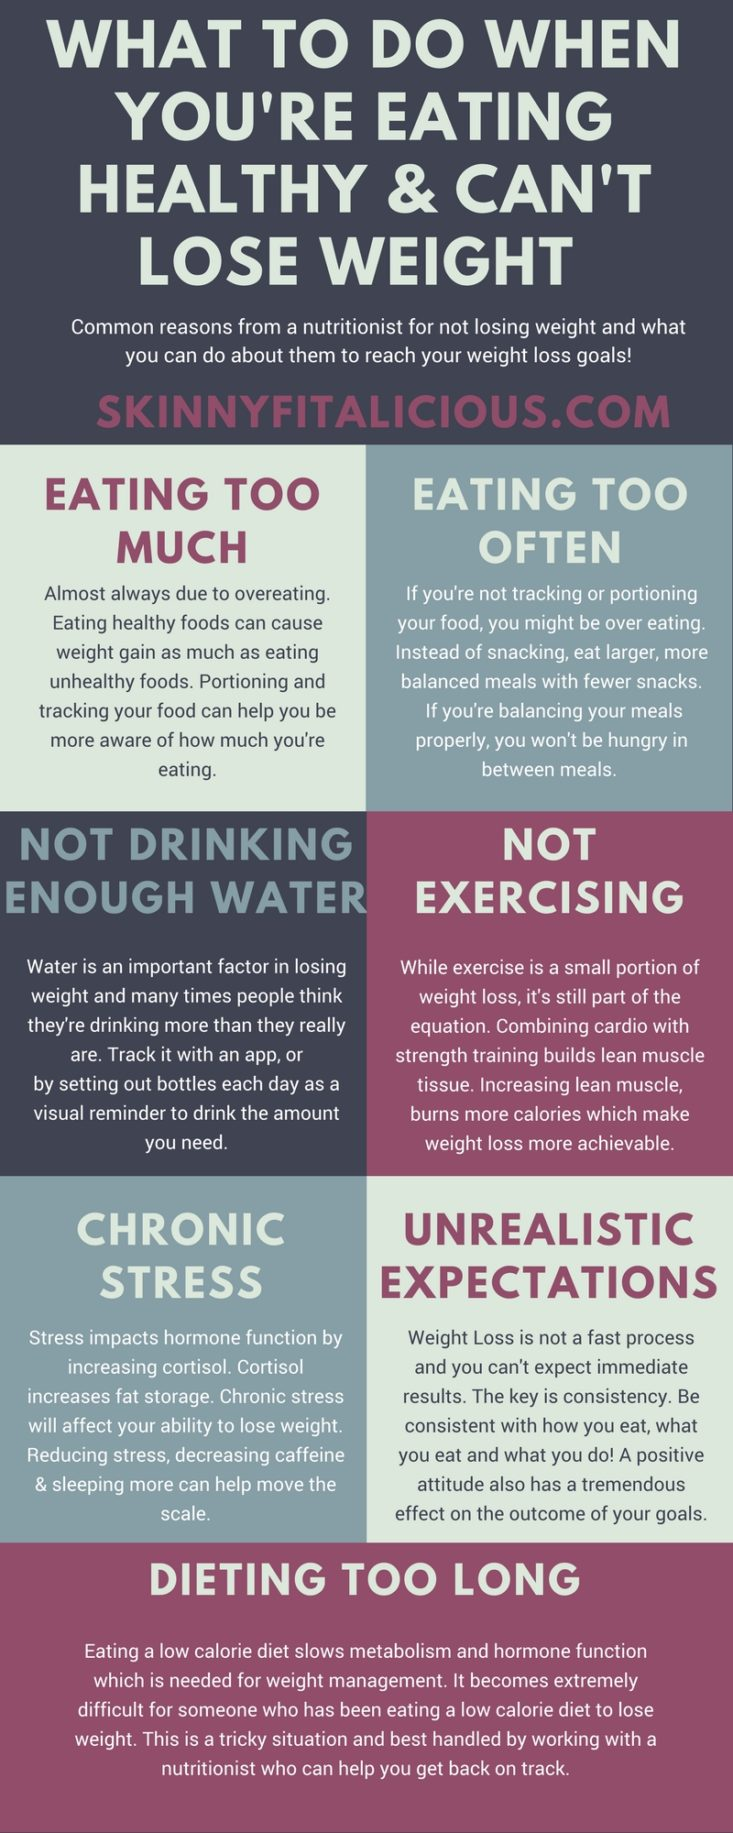 These are common reasons from a nutritionist for not losing weight so you know what to do when you're eating healthy and not losing weight.